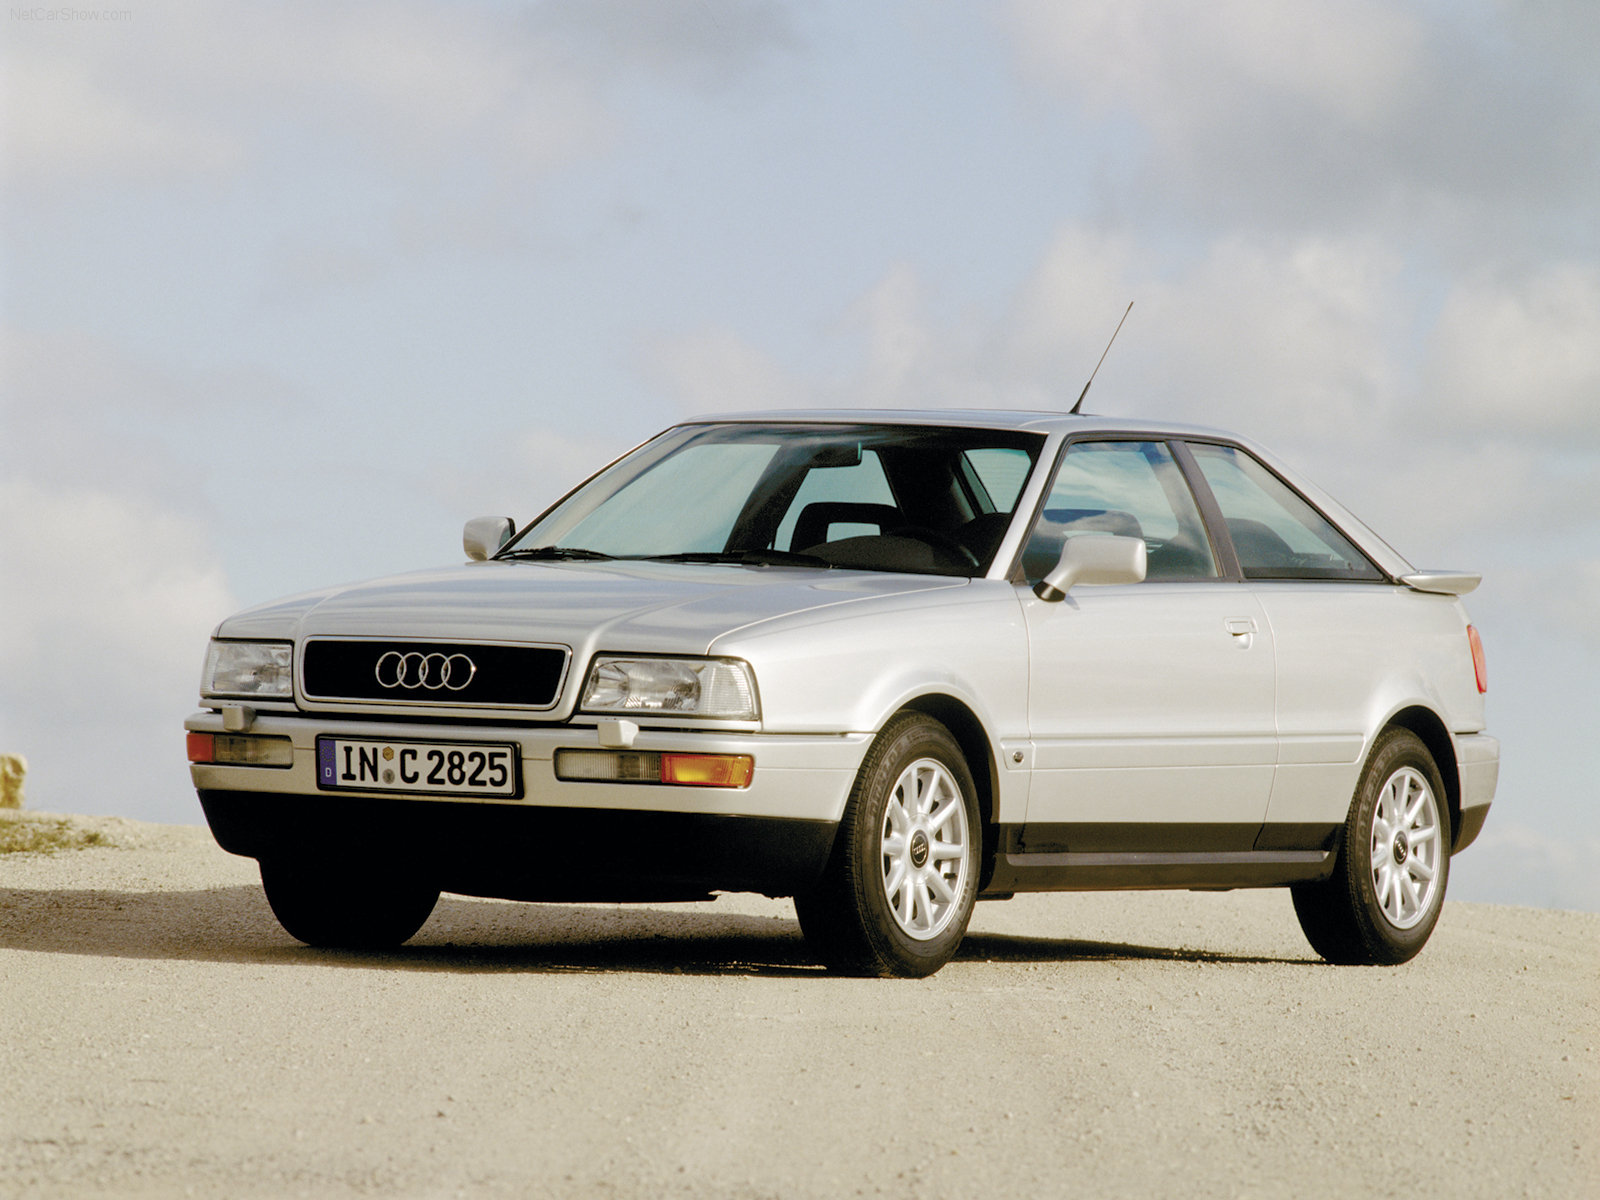 Audi Coupe Picture 65096 Audi Photo Gallery Carsbase Com